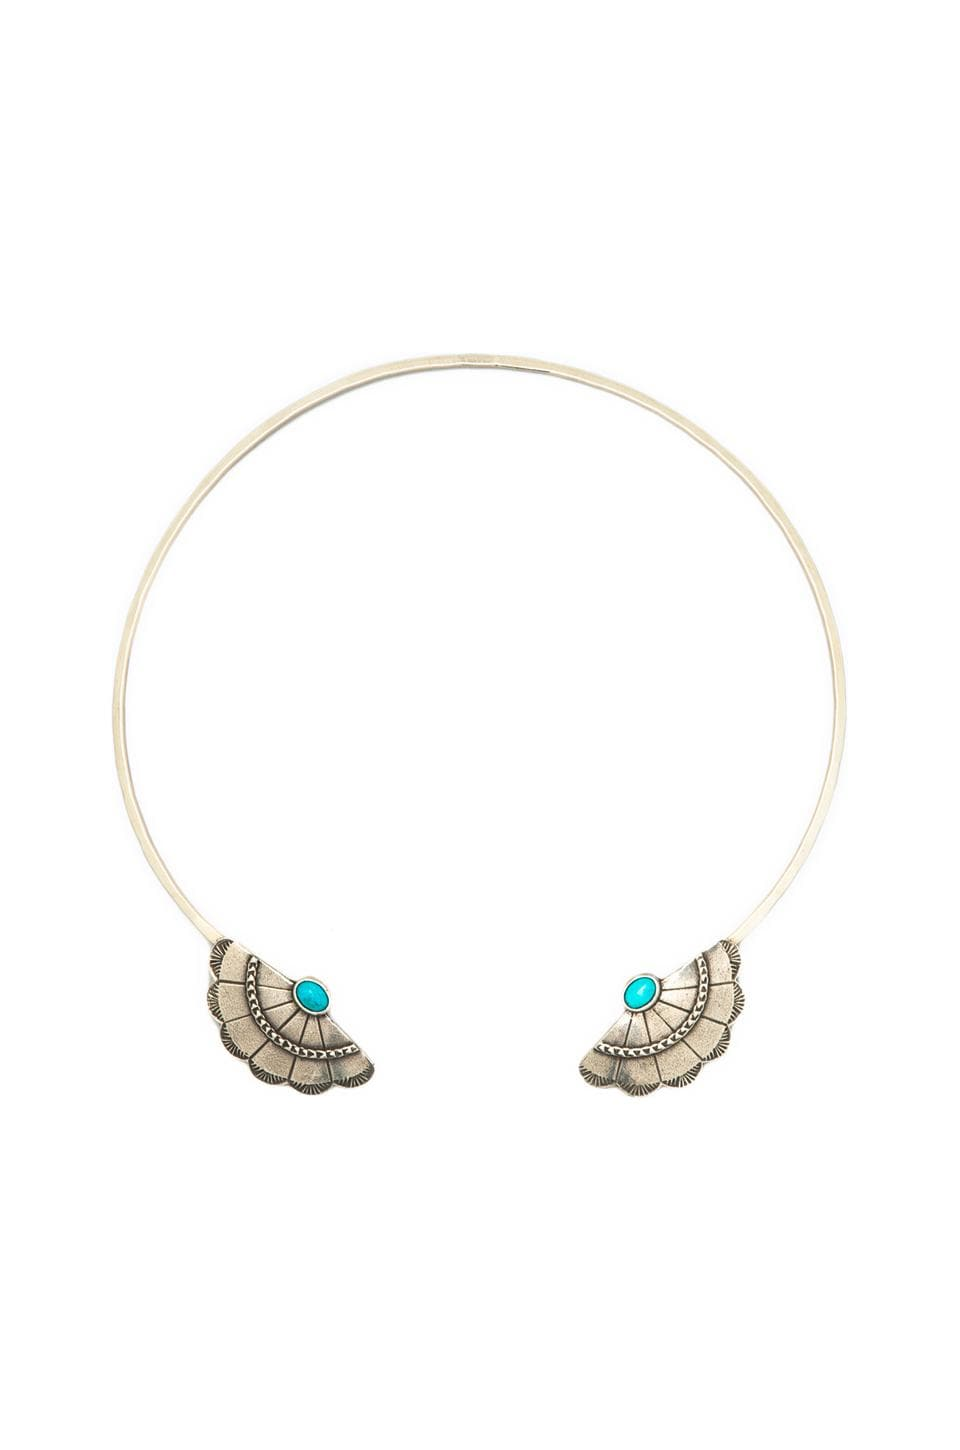 2 Bandits Concho Wing Necklace in Antique Silver/Blue Turquoise